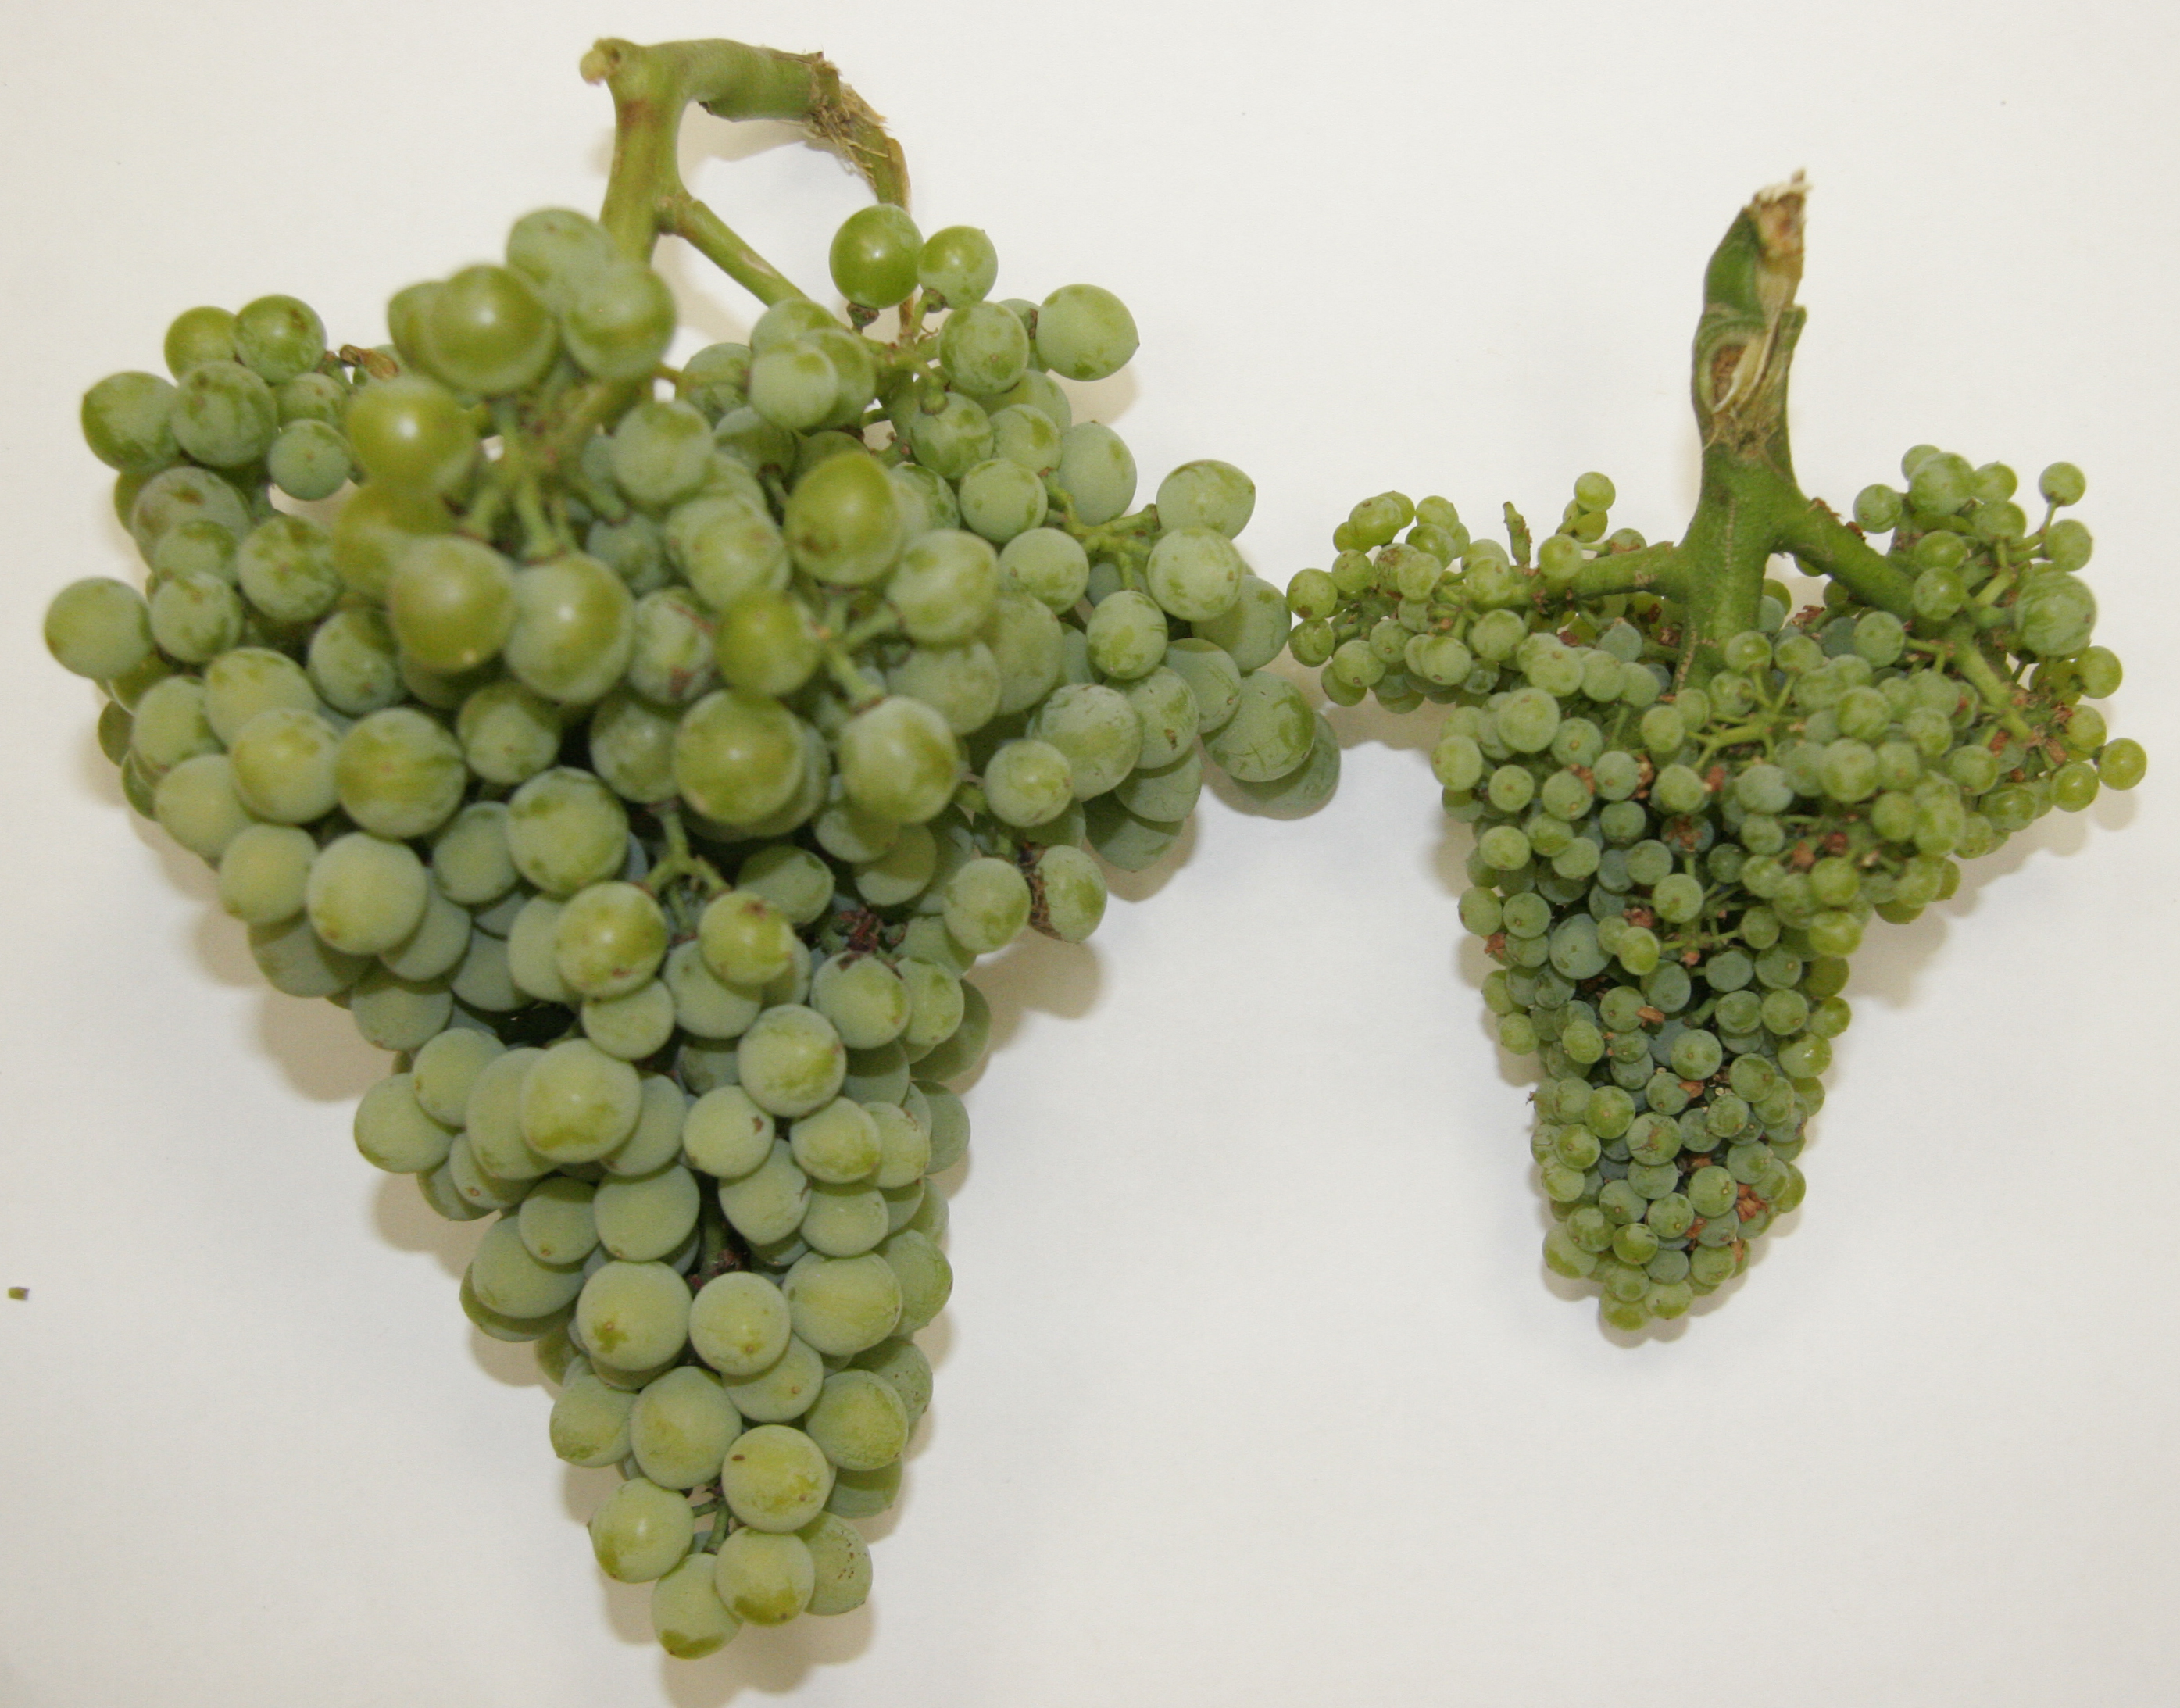 healthy vs infected grapes